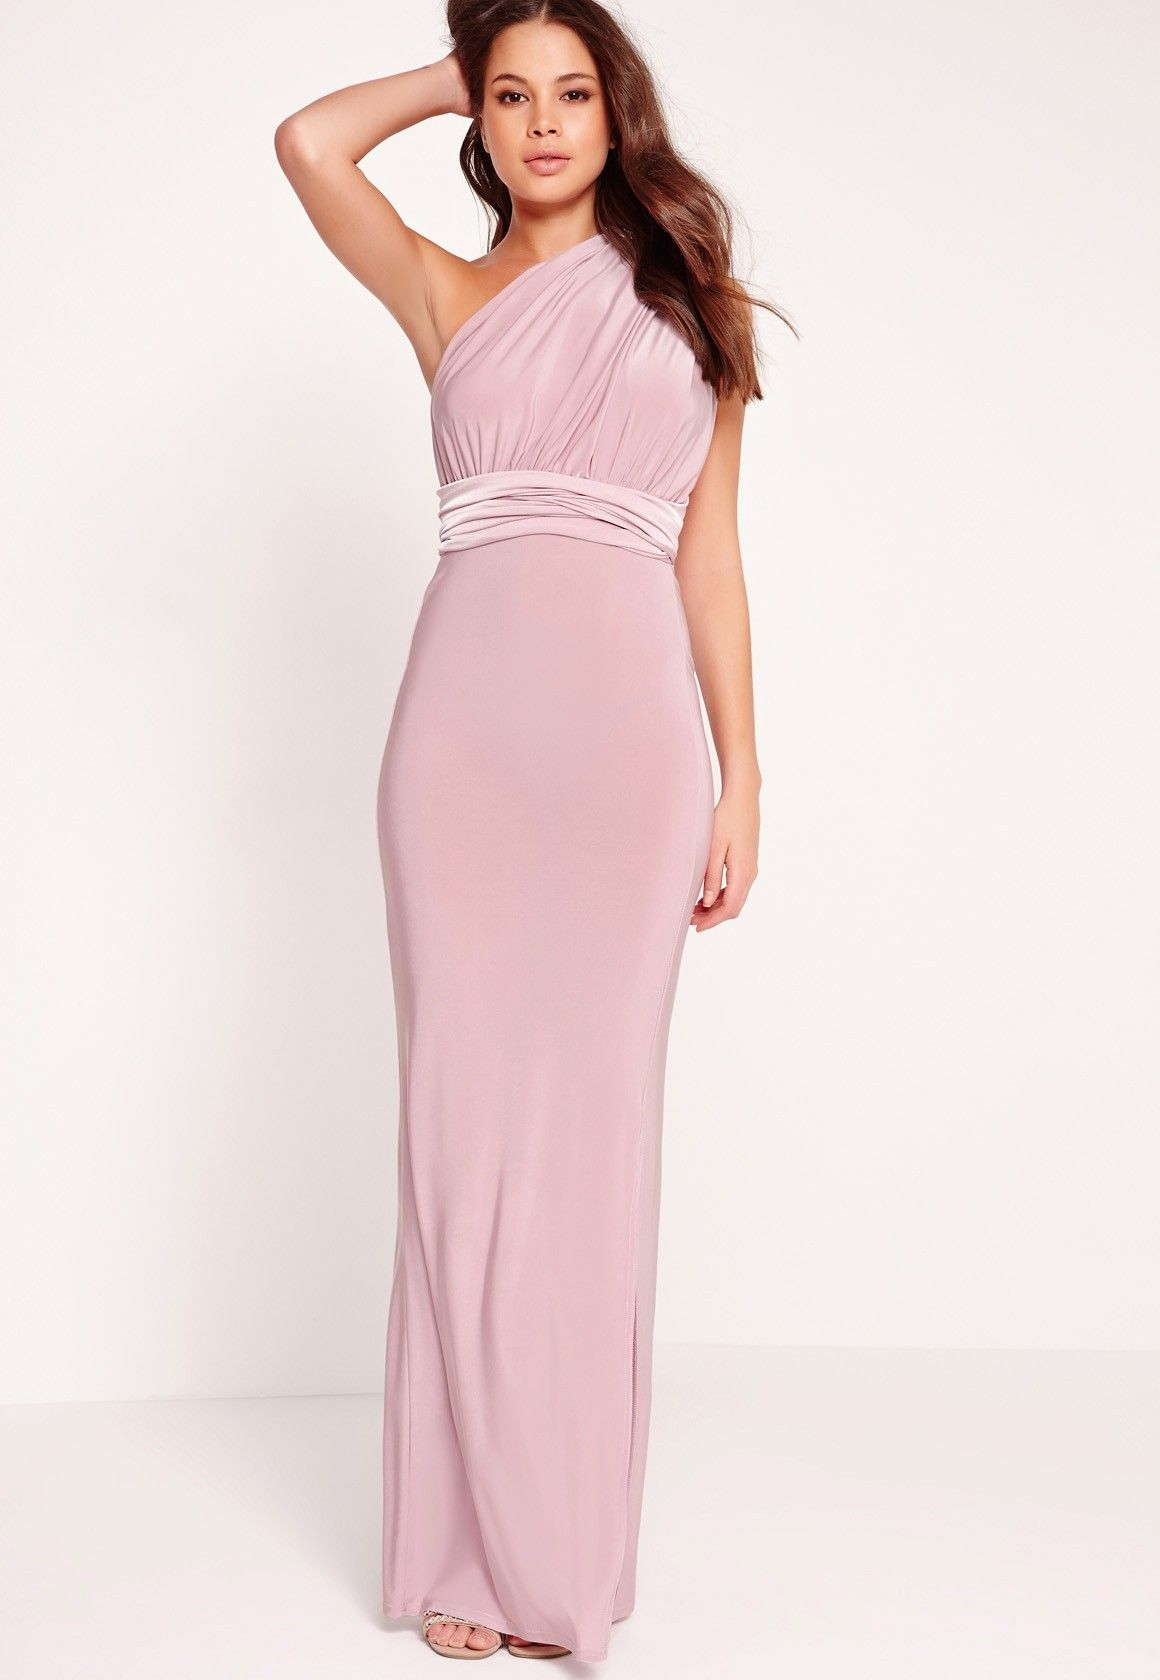 Missguided - Slinky Multiway Maxi Dress Lilac | Bridesmaids | Pinterest